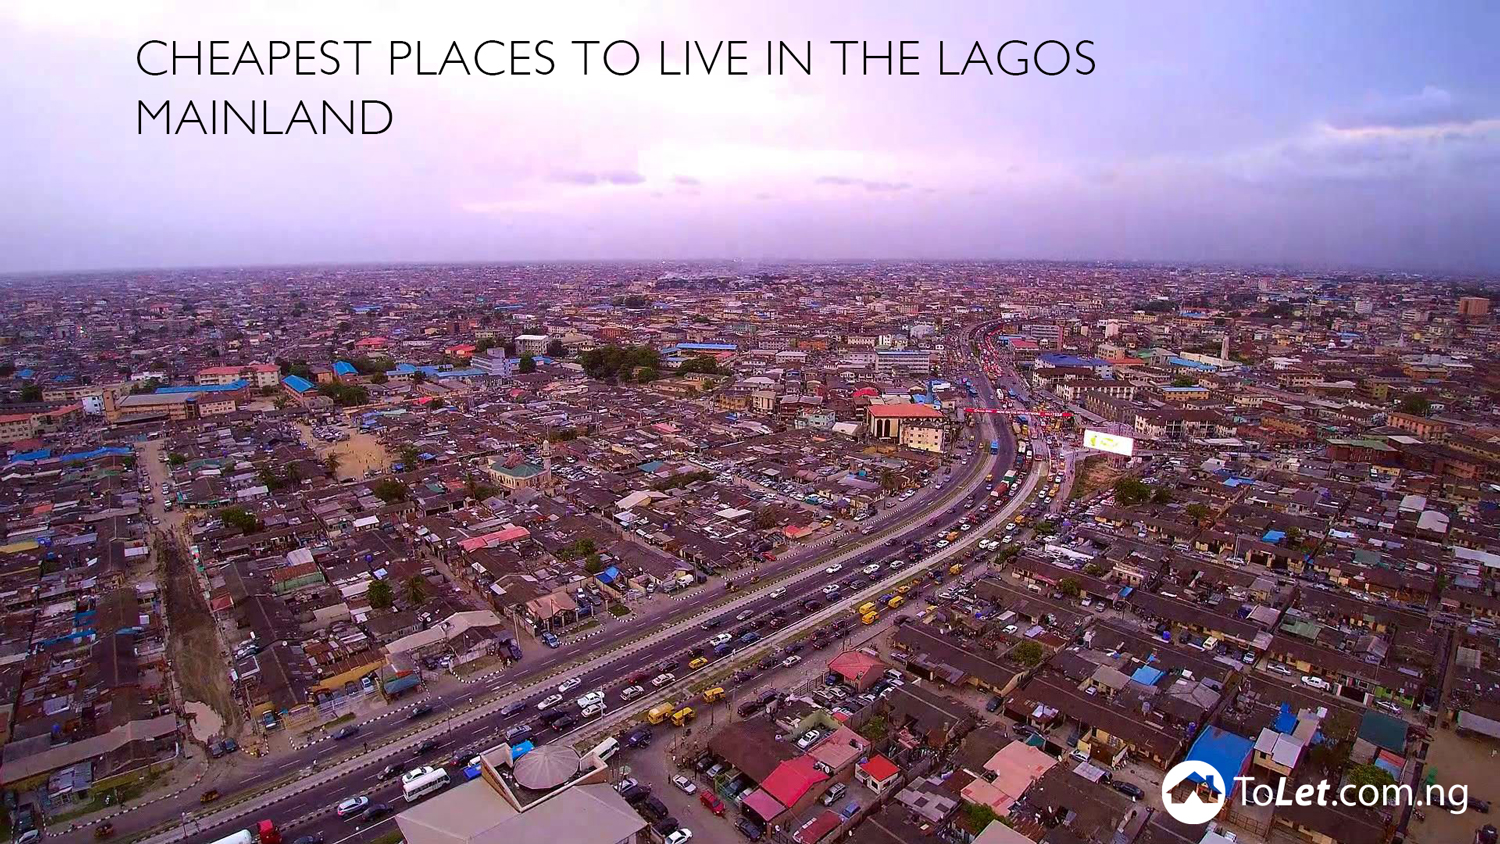 CHEAPEST PLACES TO LIVE IN THE LAGOS MAINLAND